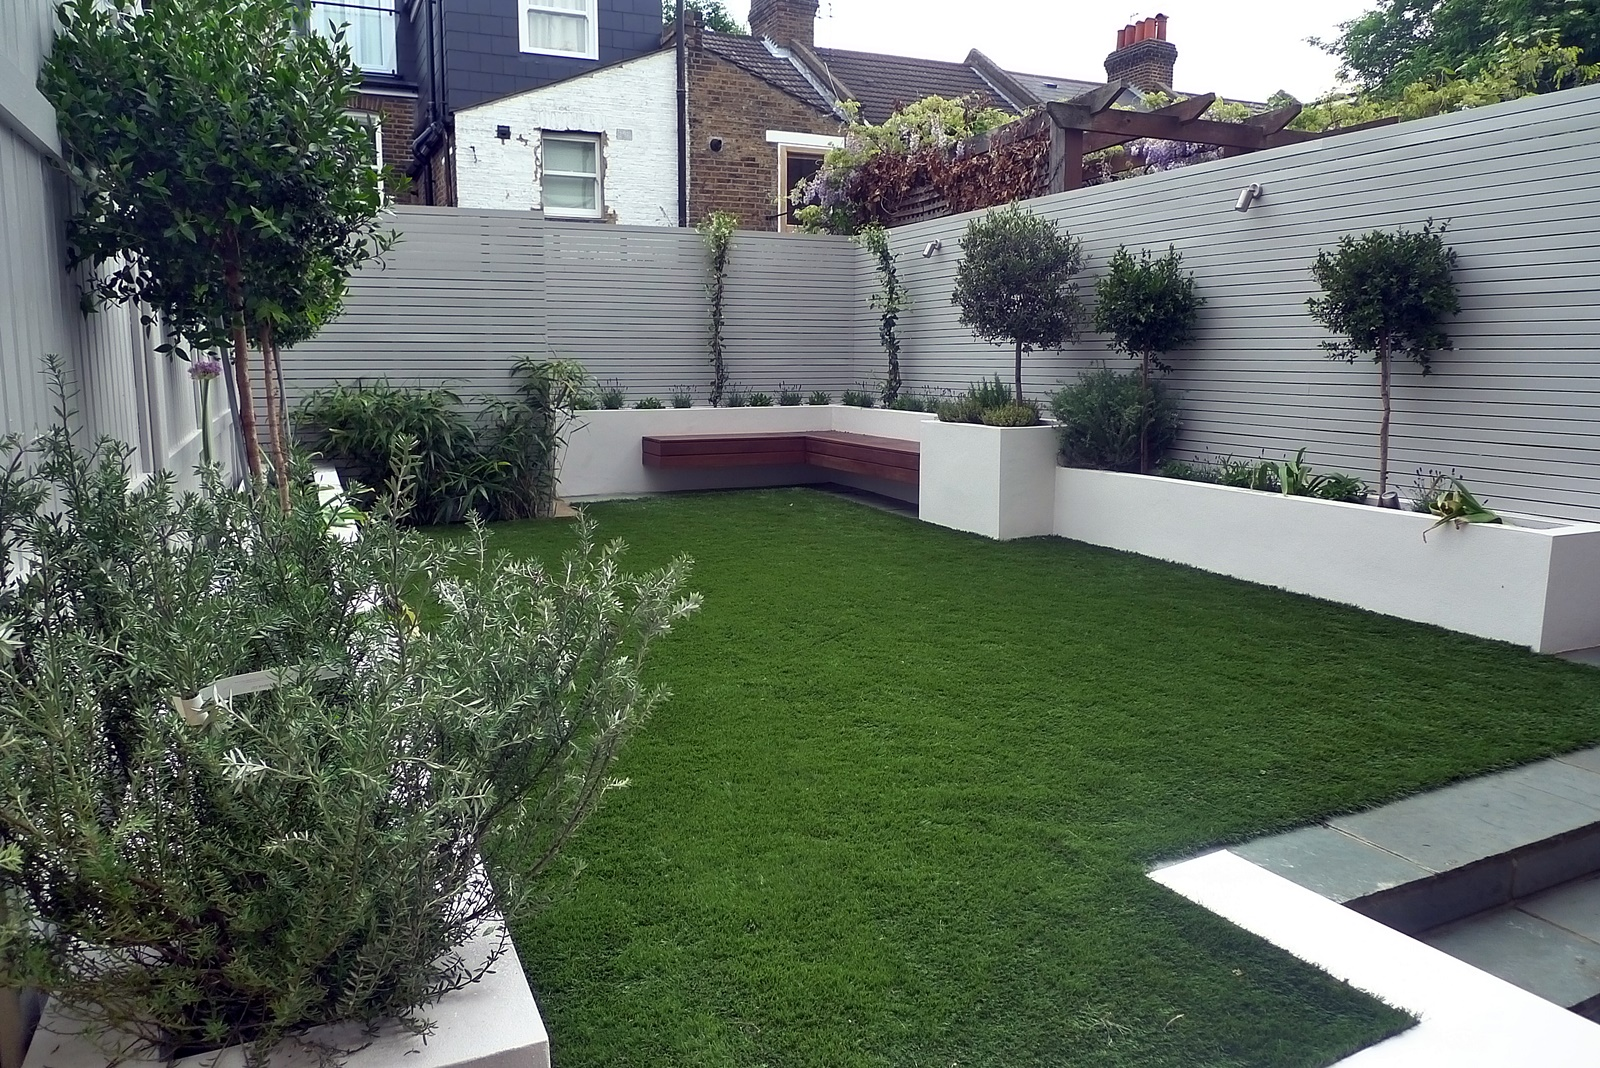 London garden blog london garden blog gardens from for Small modern garden design ideas